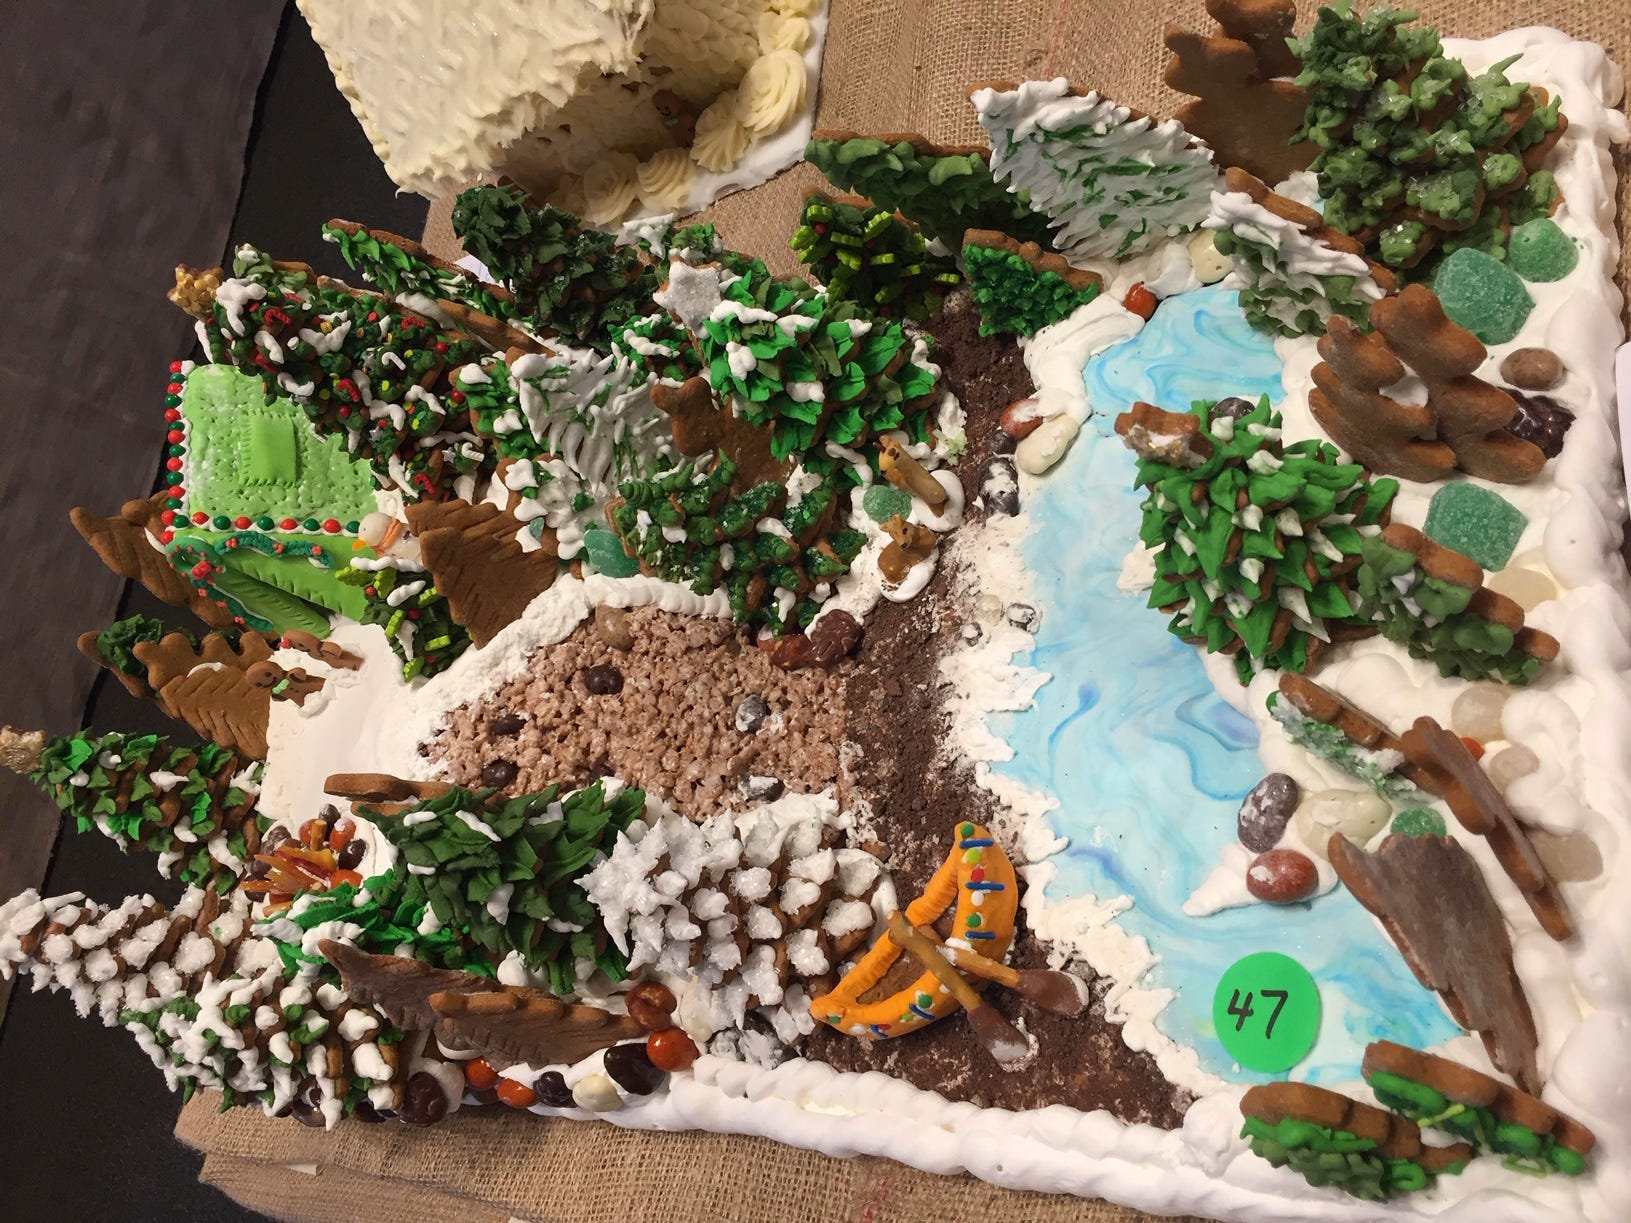 """Ginger Forest State Park"" by Janna Tolomieri of East Hanover, at the Gingerbread Wonderland at the Frelinghuysen Arboretum. Adult category."